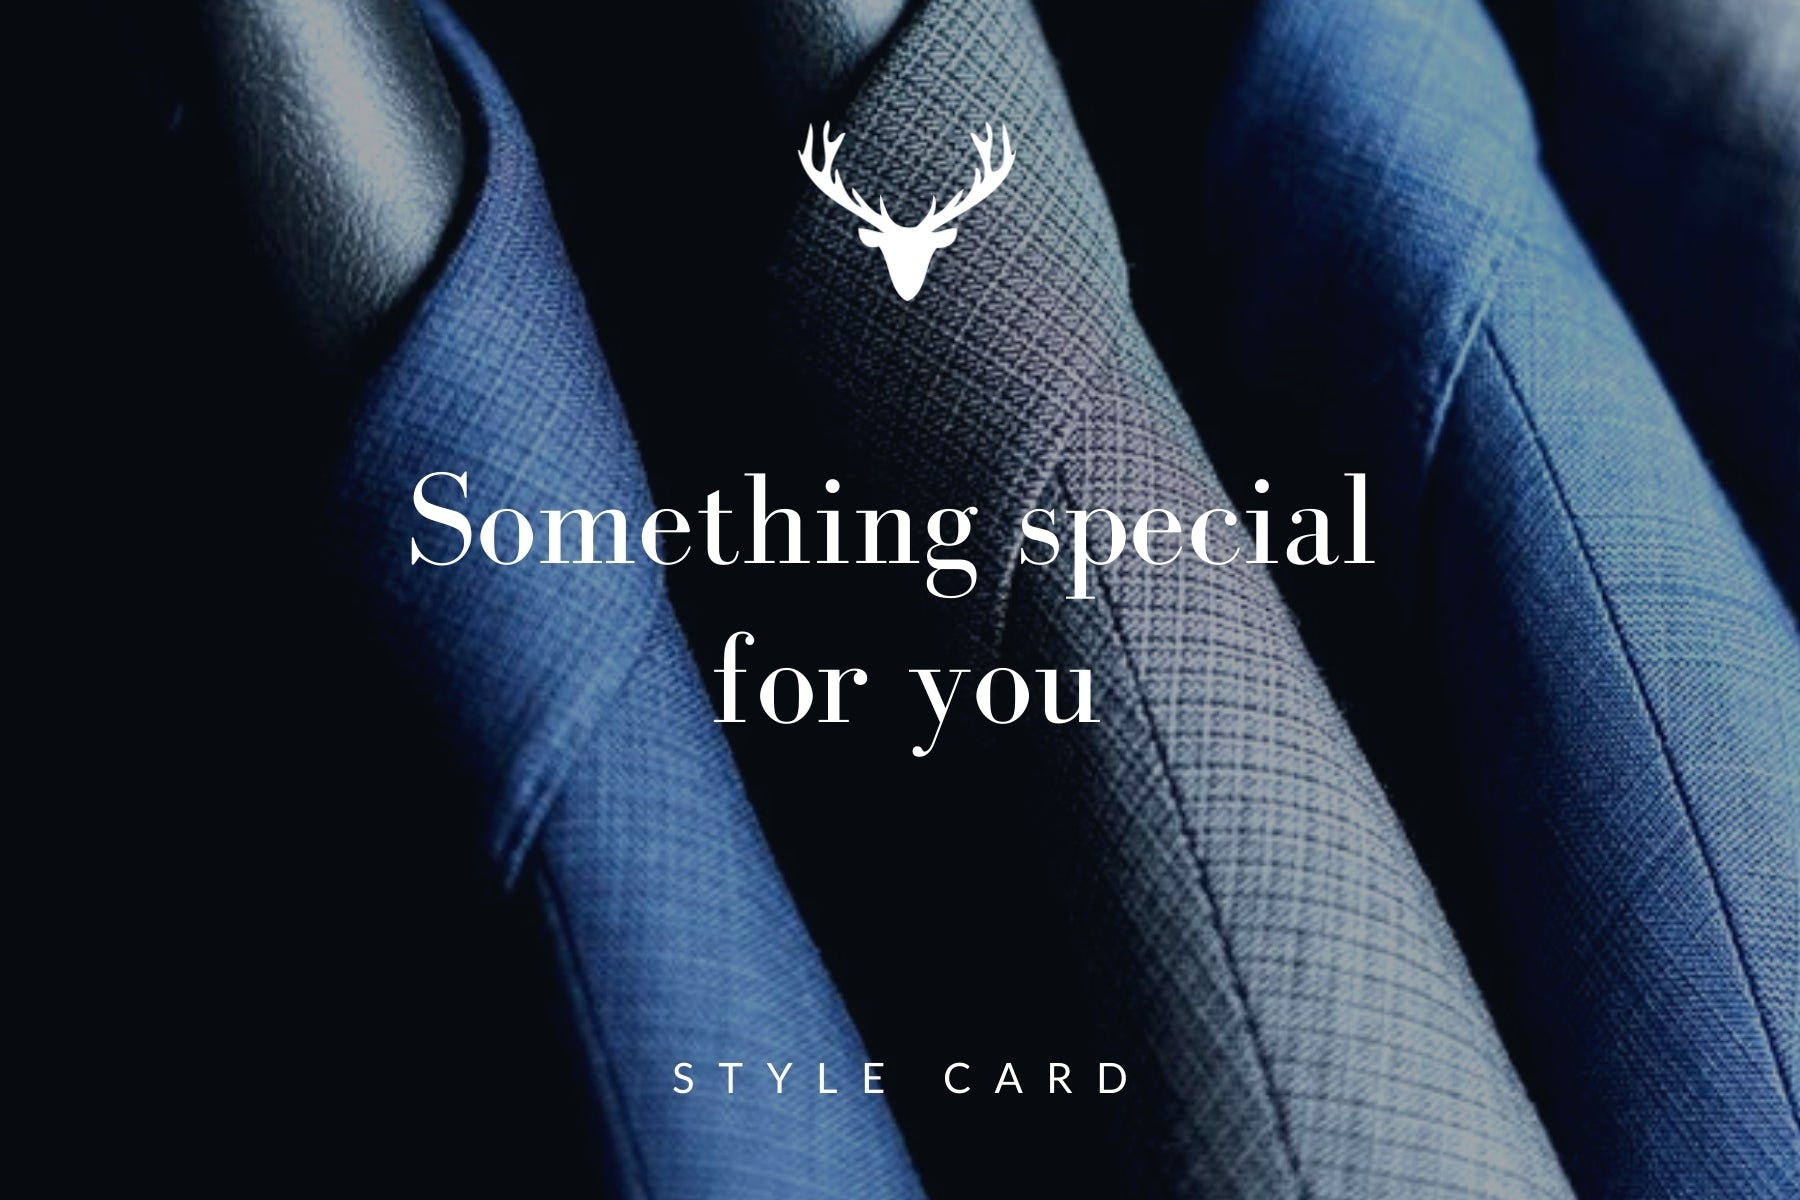 Style Card